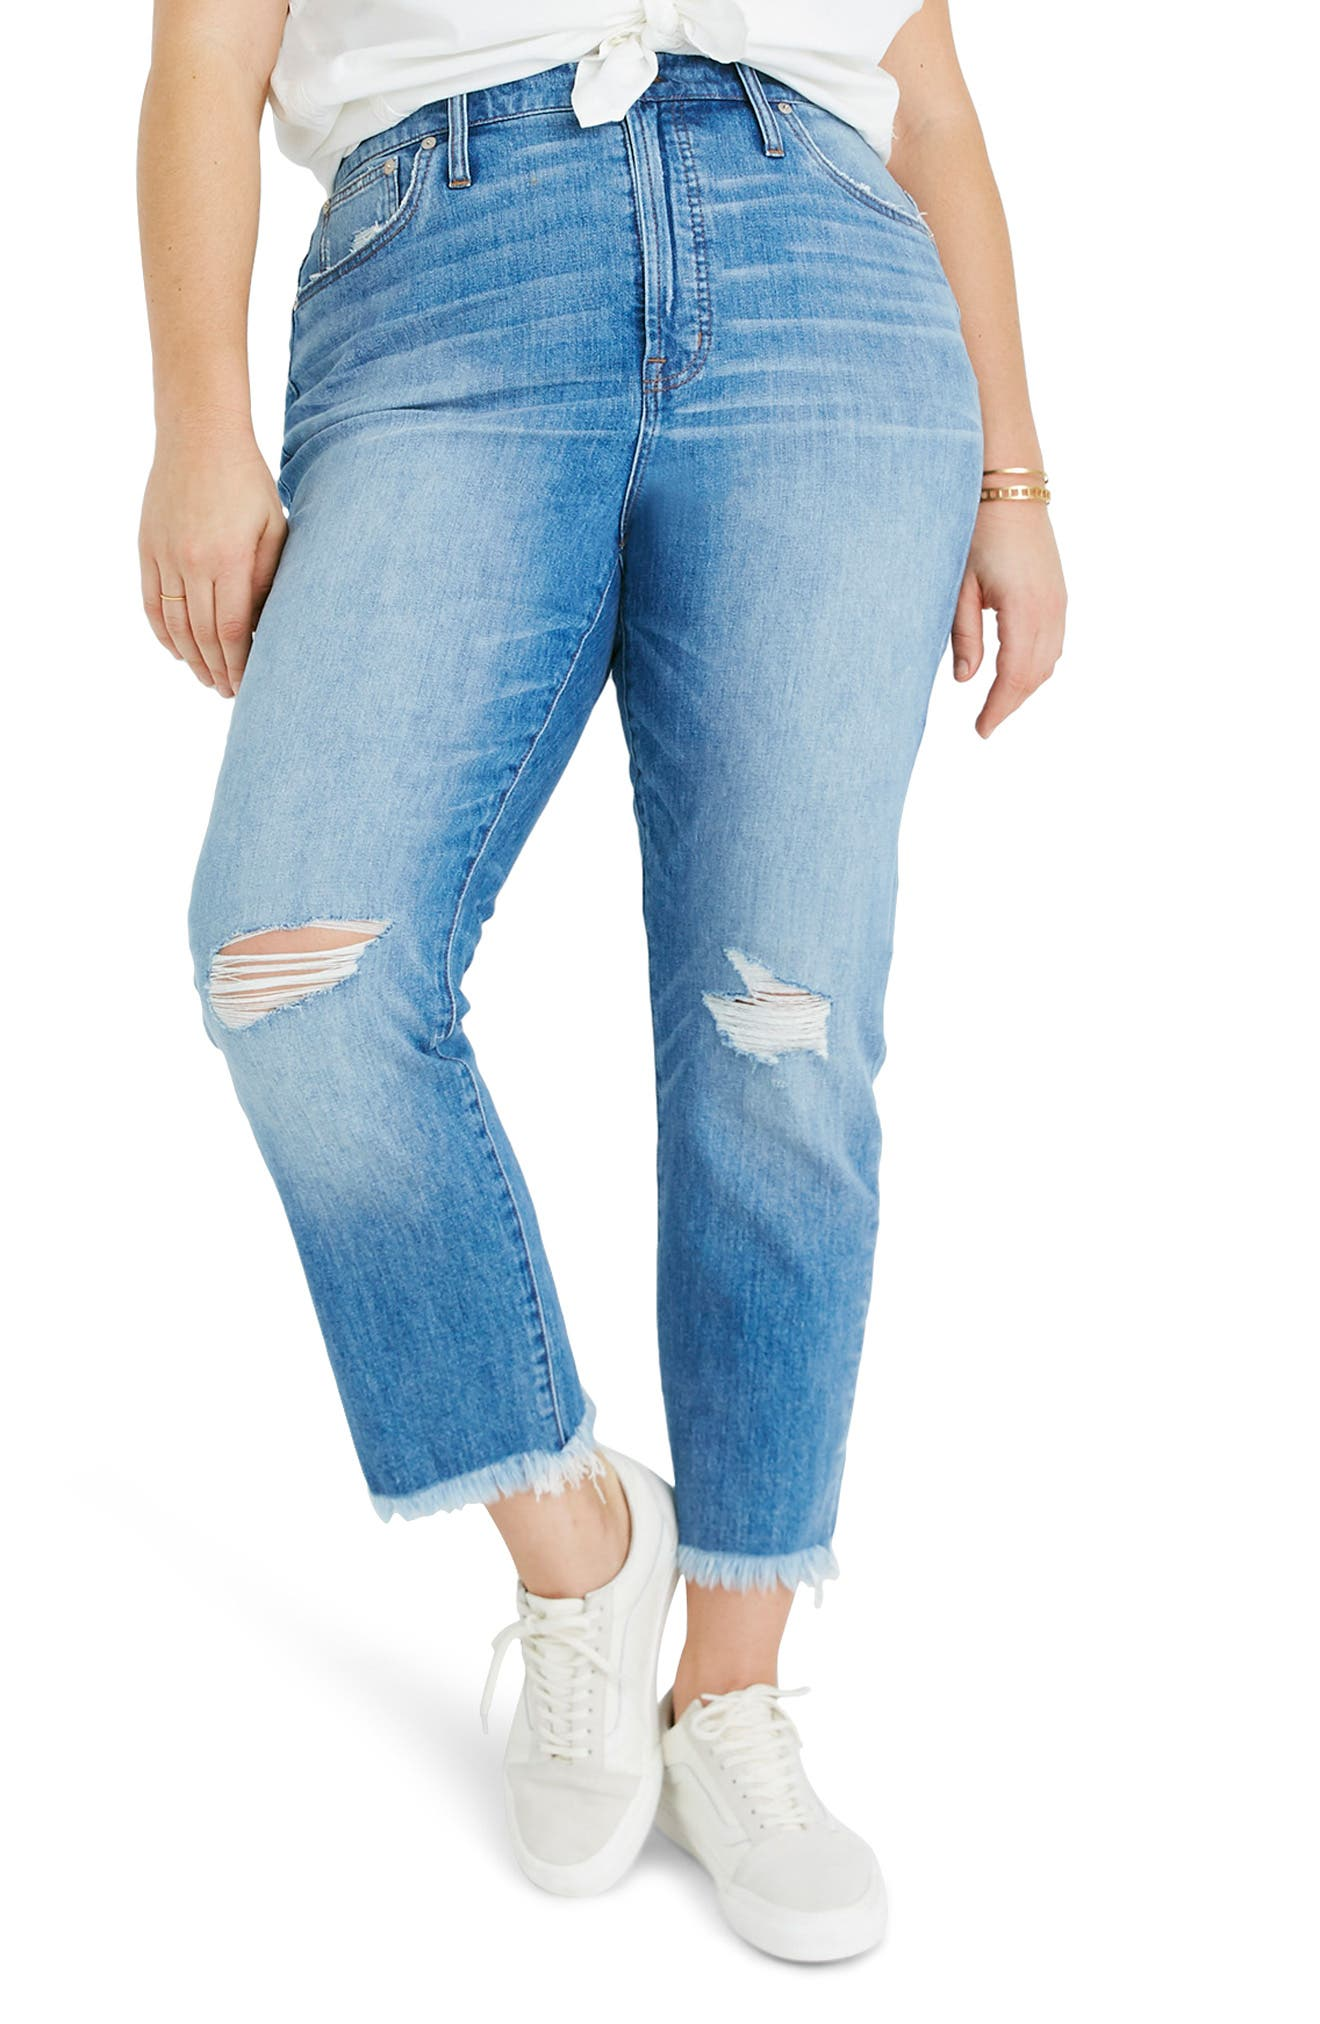 MADEWELL, The Perfect Vintage Crop High Waist Jeans, Alternate thumbnail 2, color, PARNELL WASH